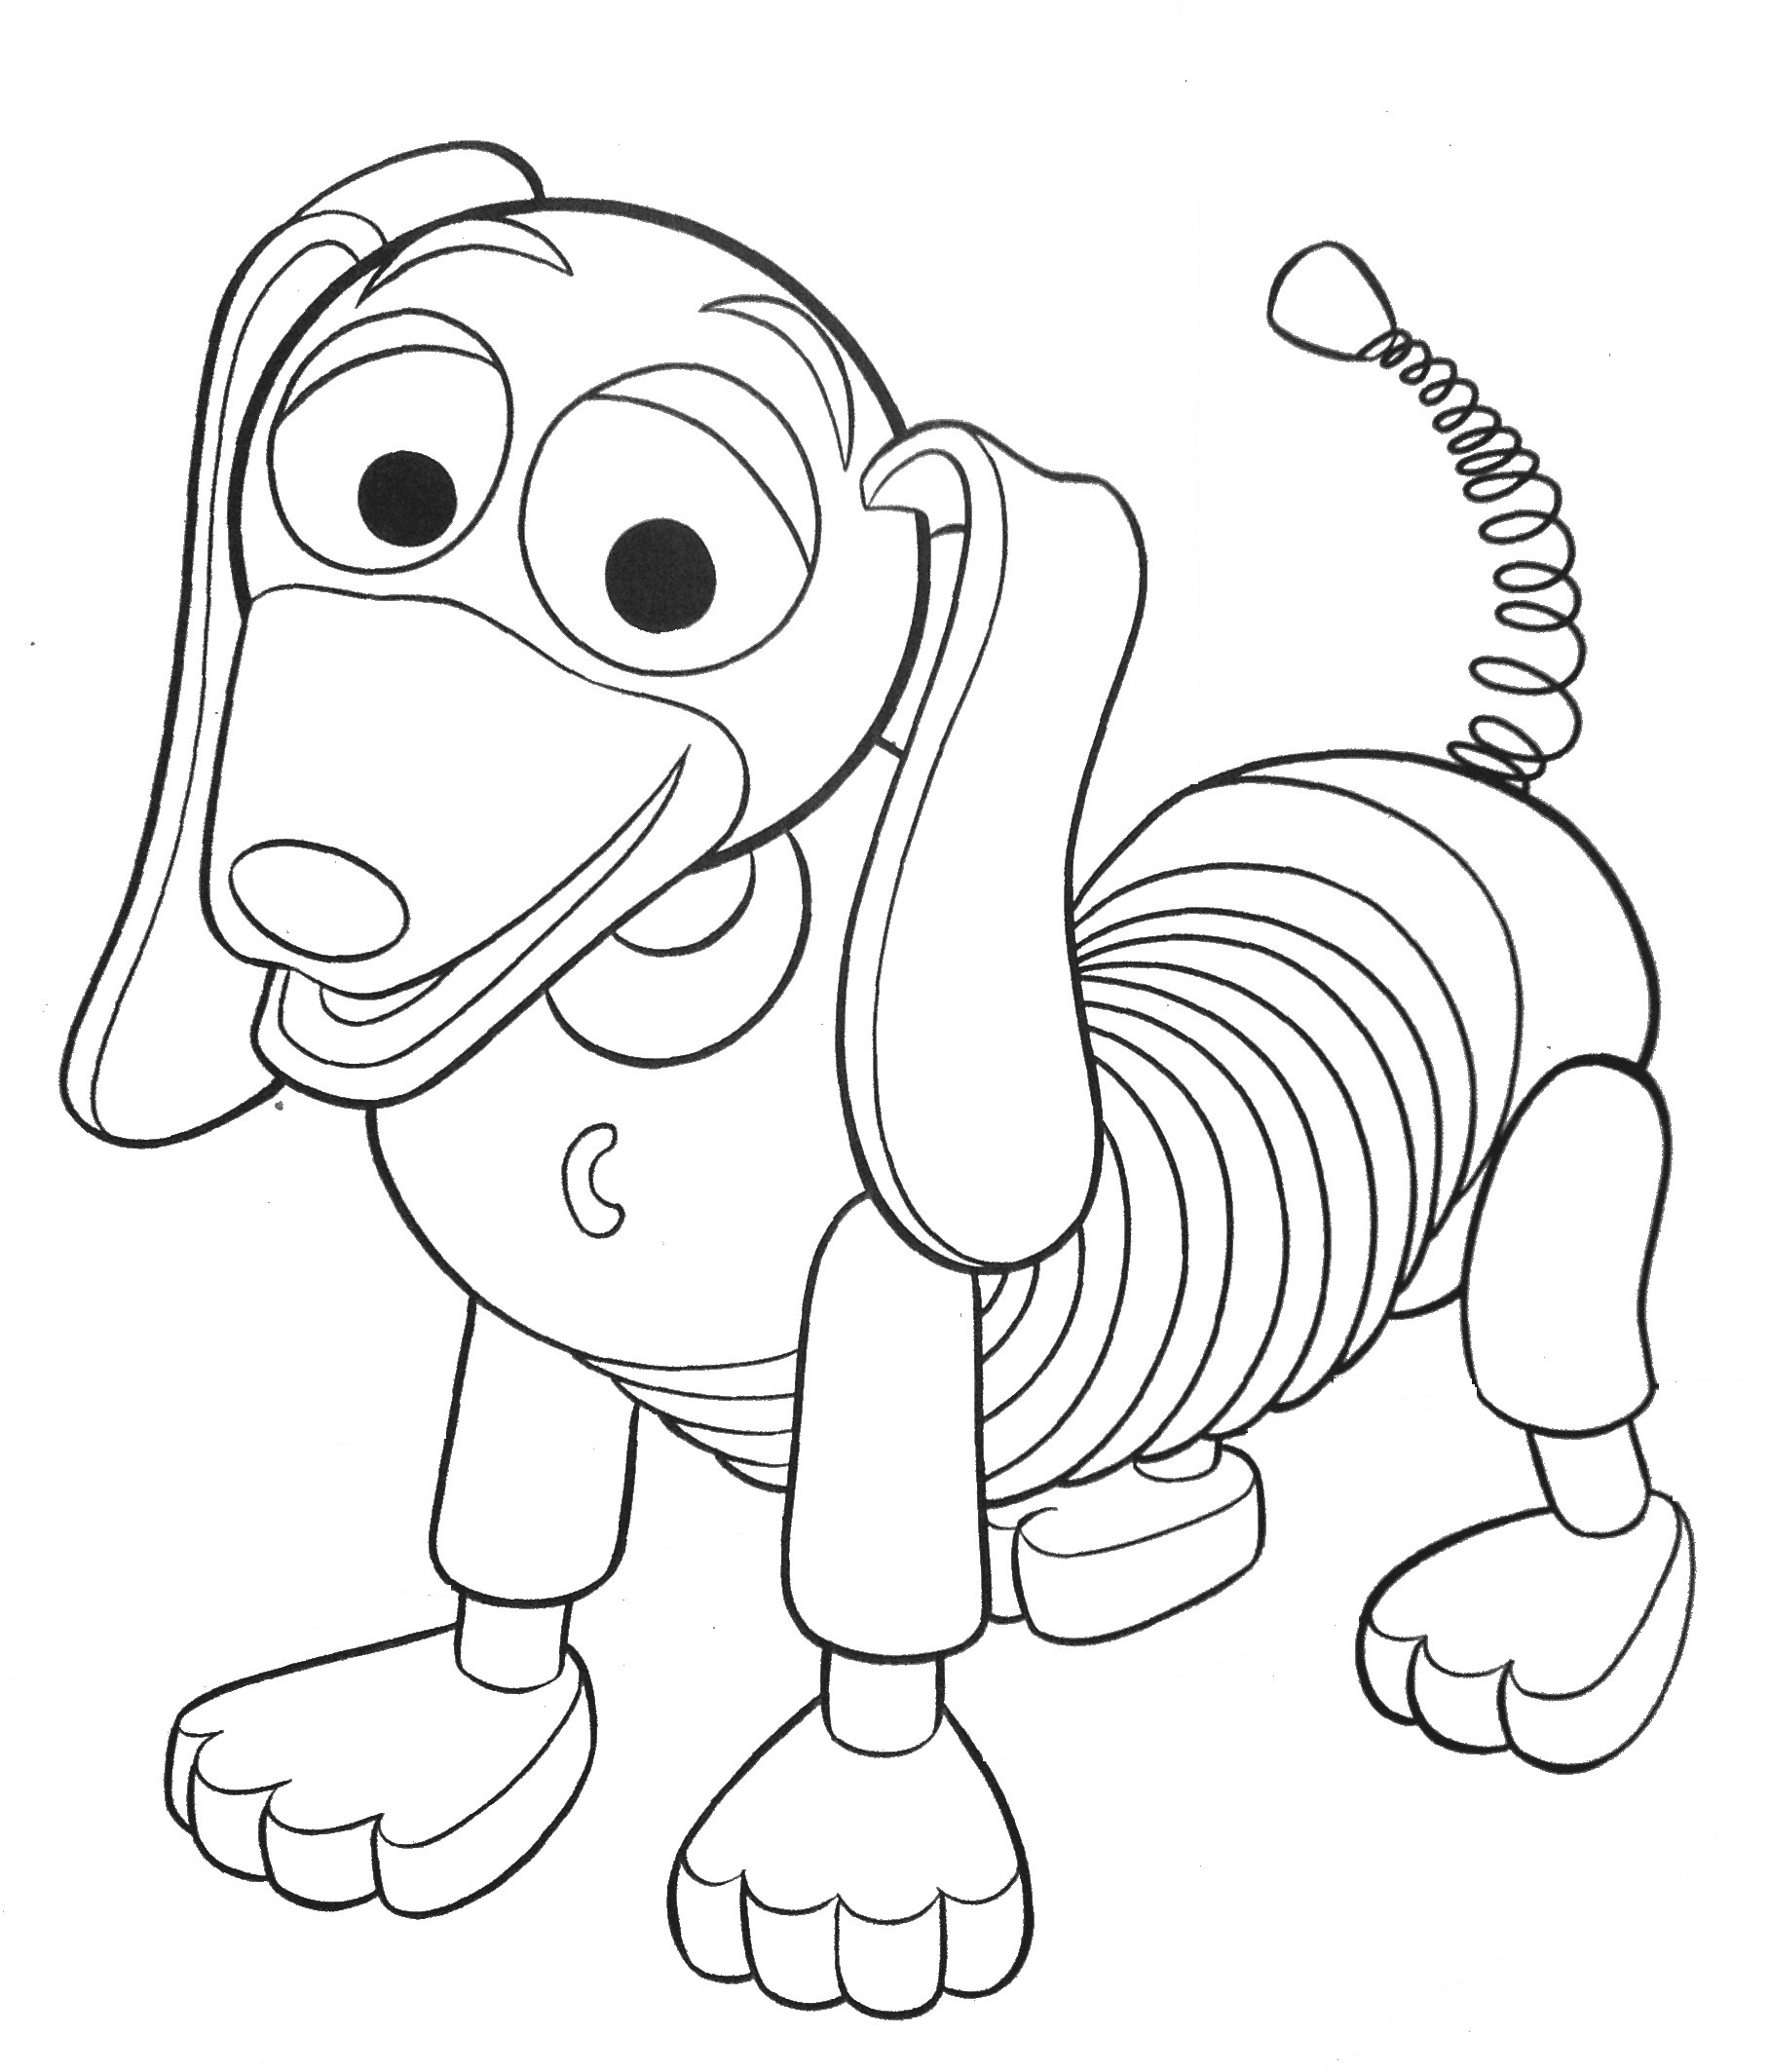 Toy Story clipart slinky Coloring Story toy Pages Toy